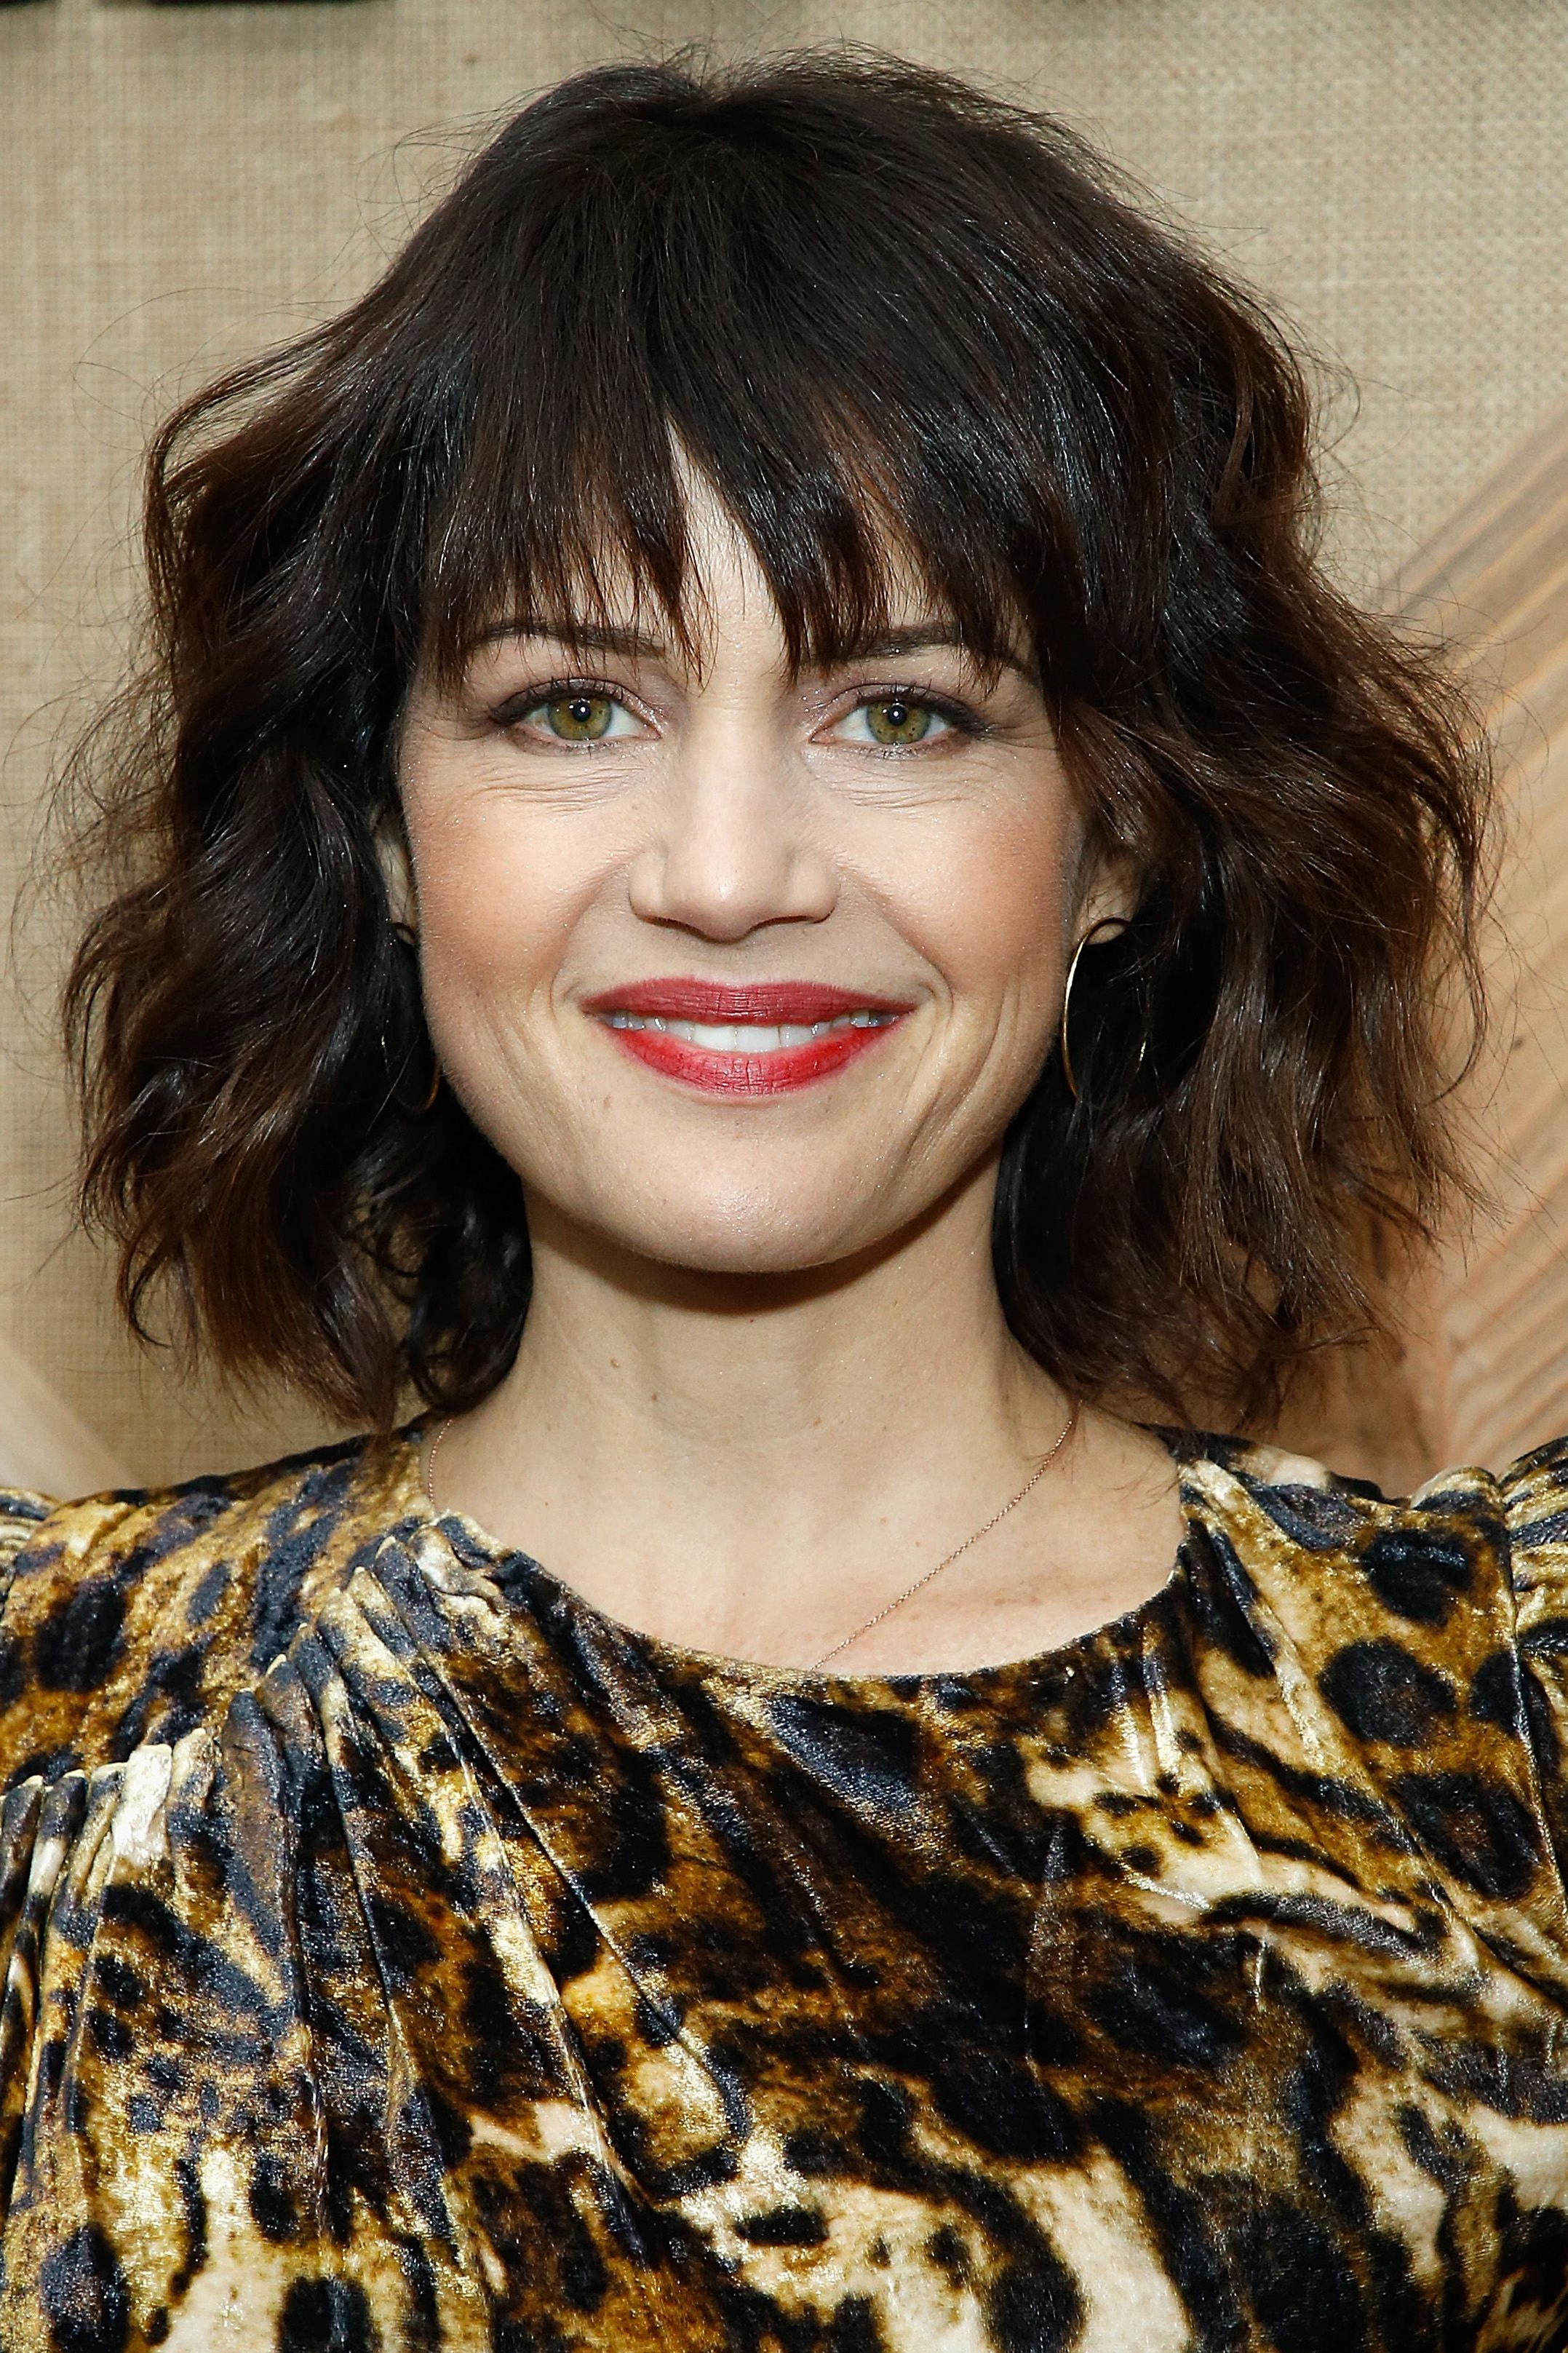 Current Layered And Outward Feathered Bob Hairstyles With Bangs Within 55+ Cute Bob Haircuts And Hairstyles 2019 – Long, Short, And (View 6 of 20)